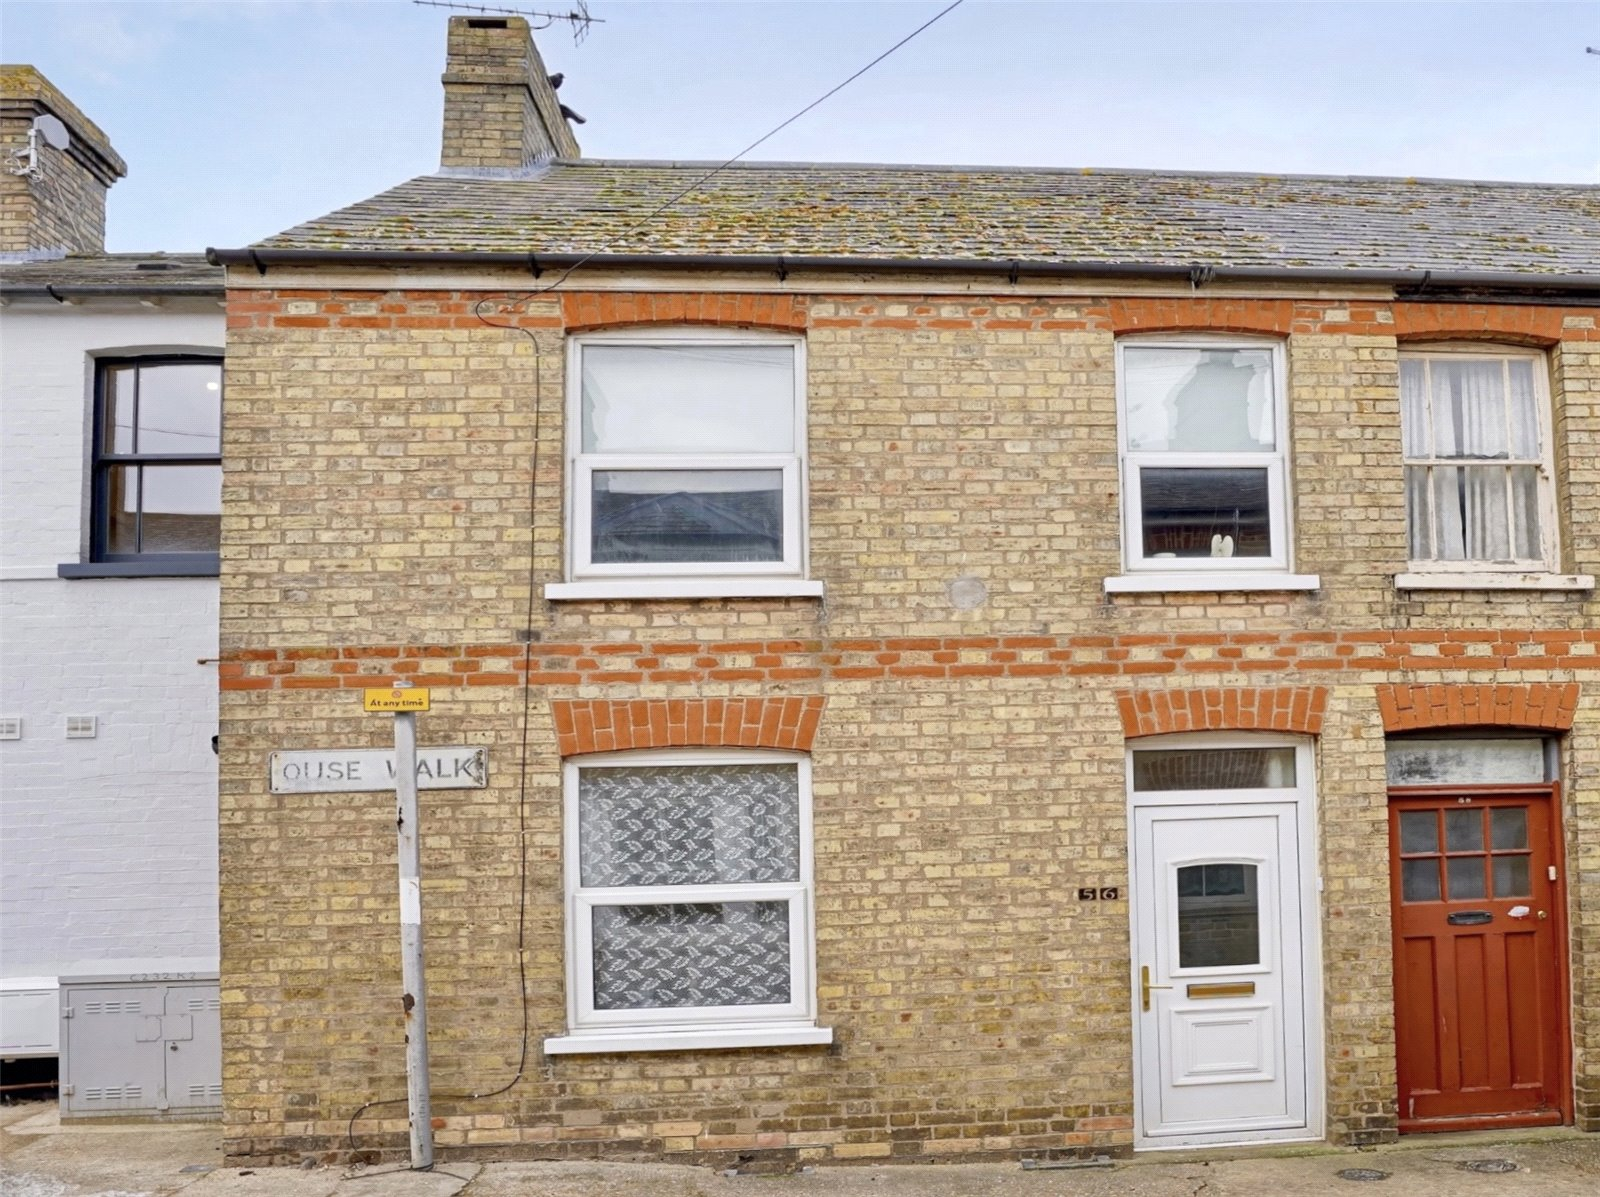 3 bed house for sale in Huntingdon, PE29 3QW 0